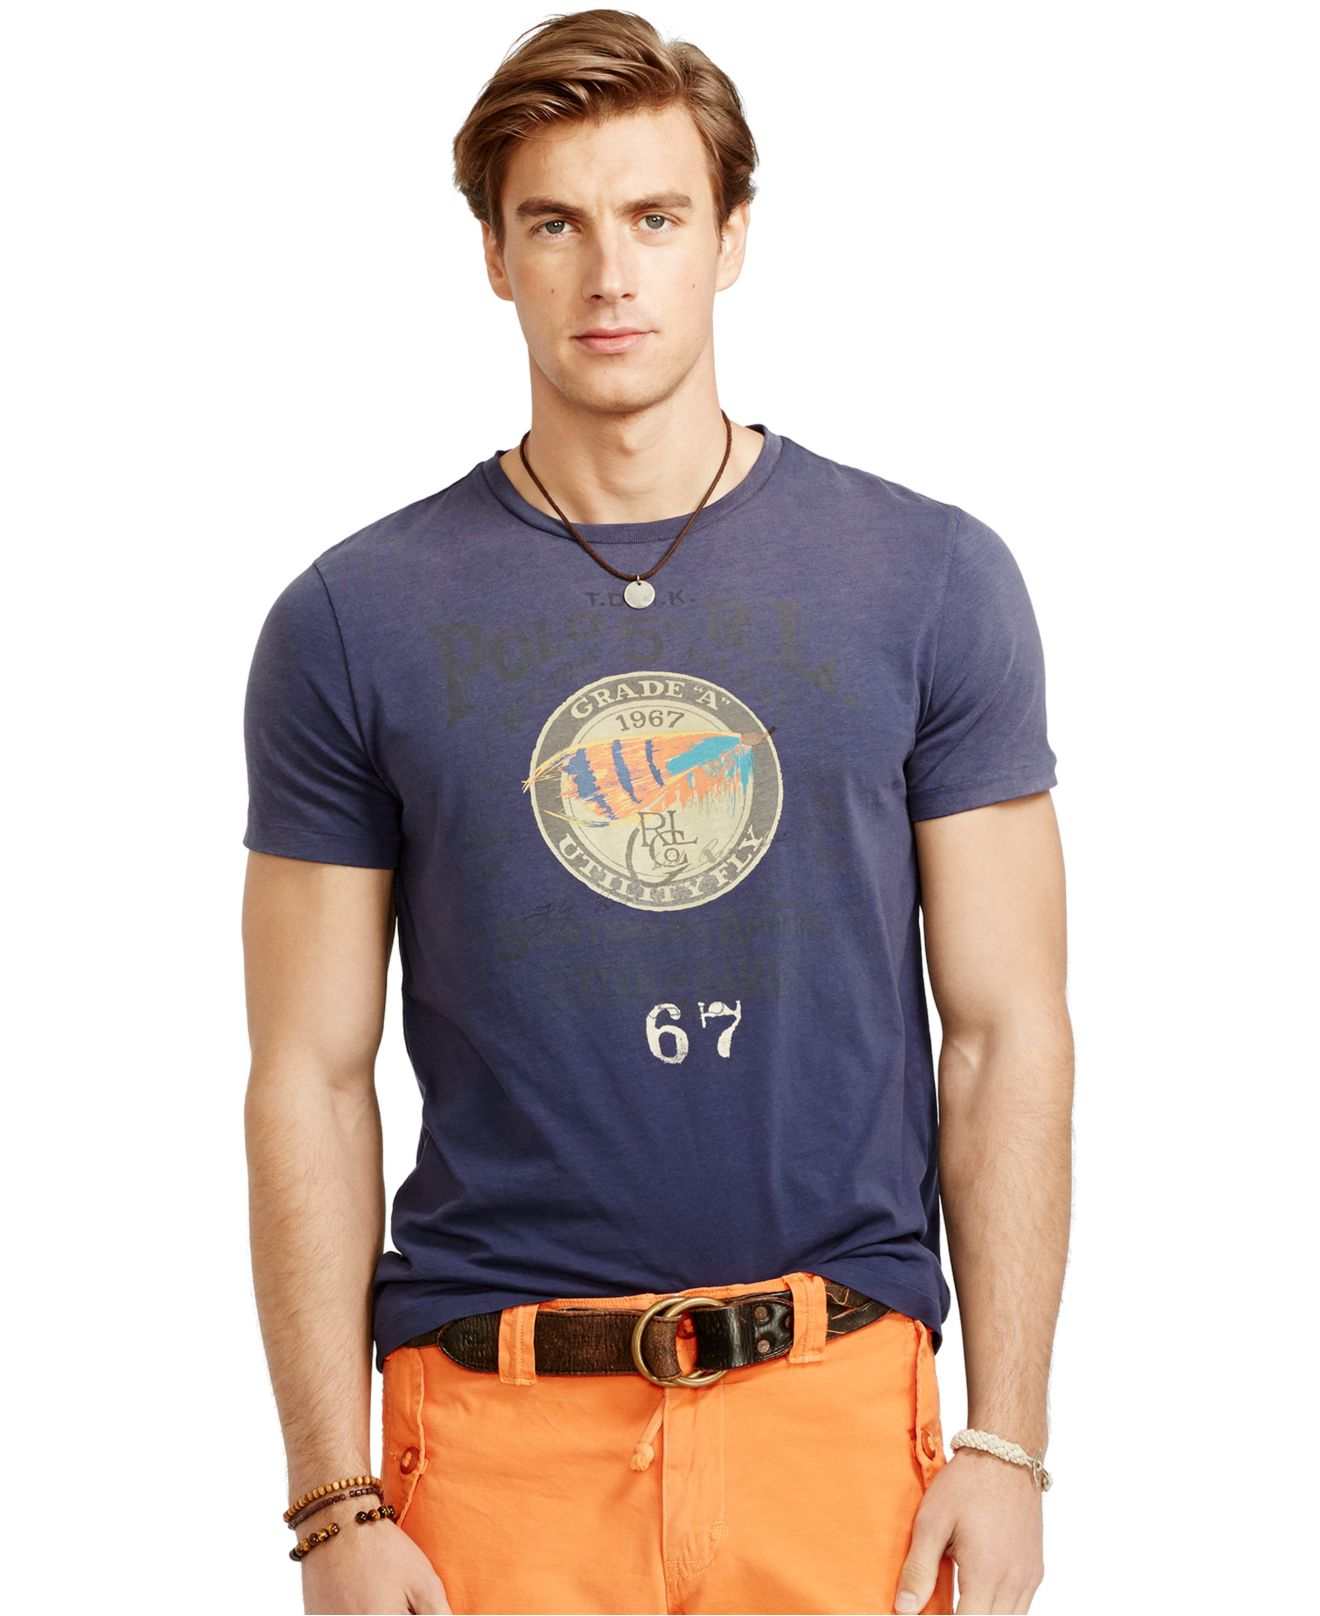 lyst polo ralph lauren fishing lure graphic t shirt in. Black Bedroom Furniture Sets. Home Design Ideas